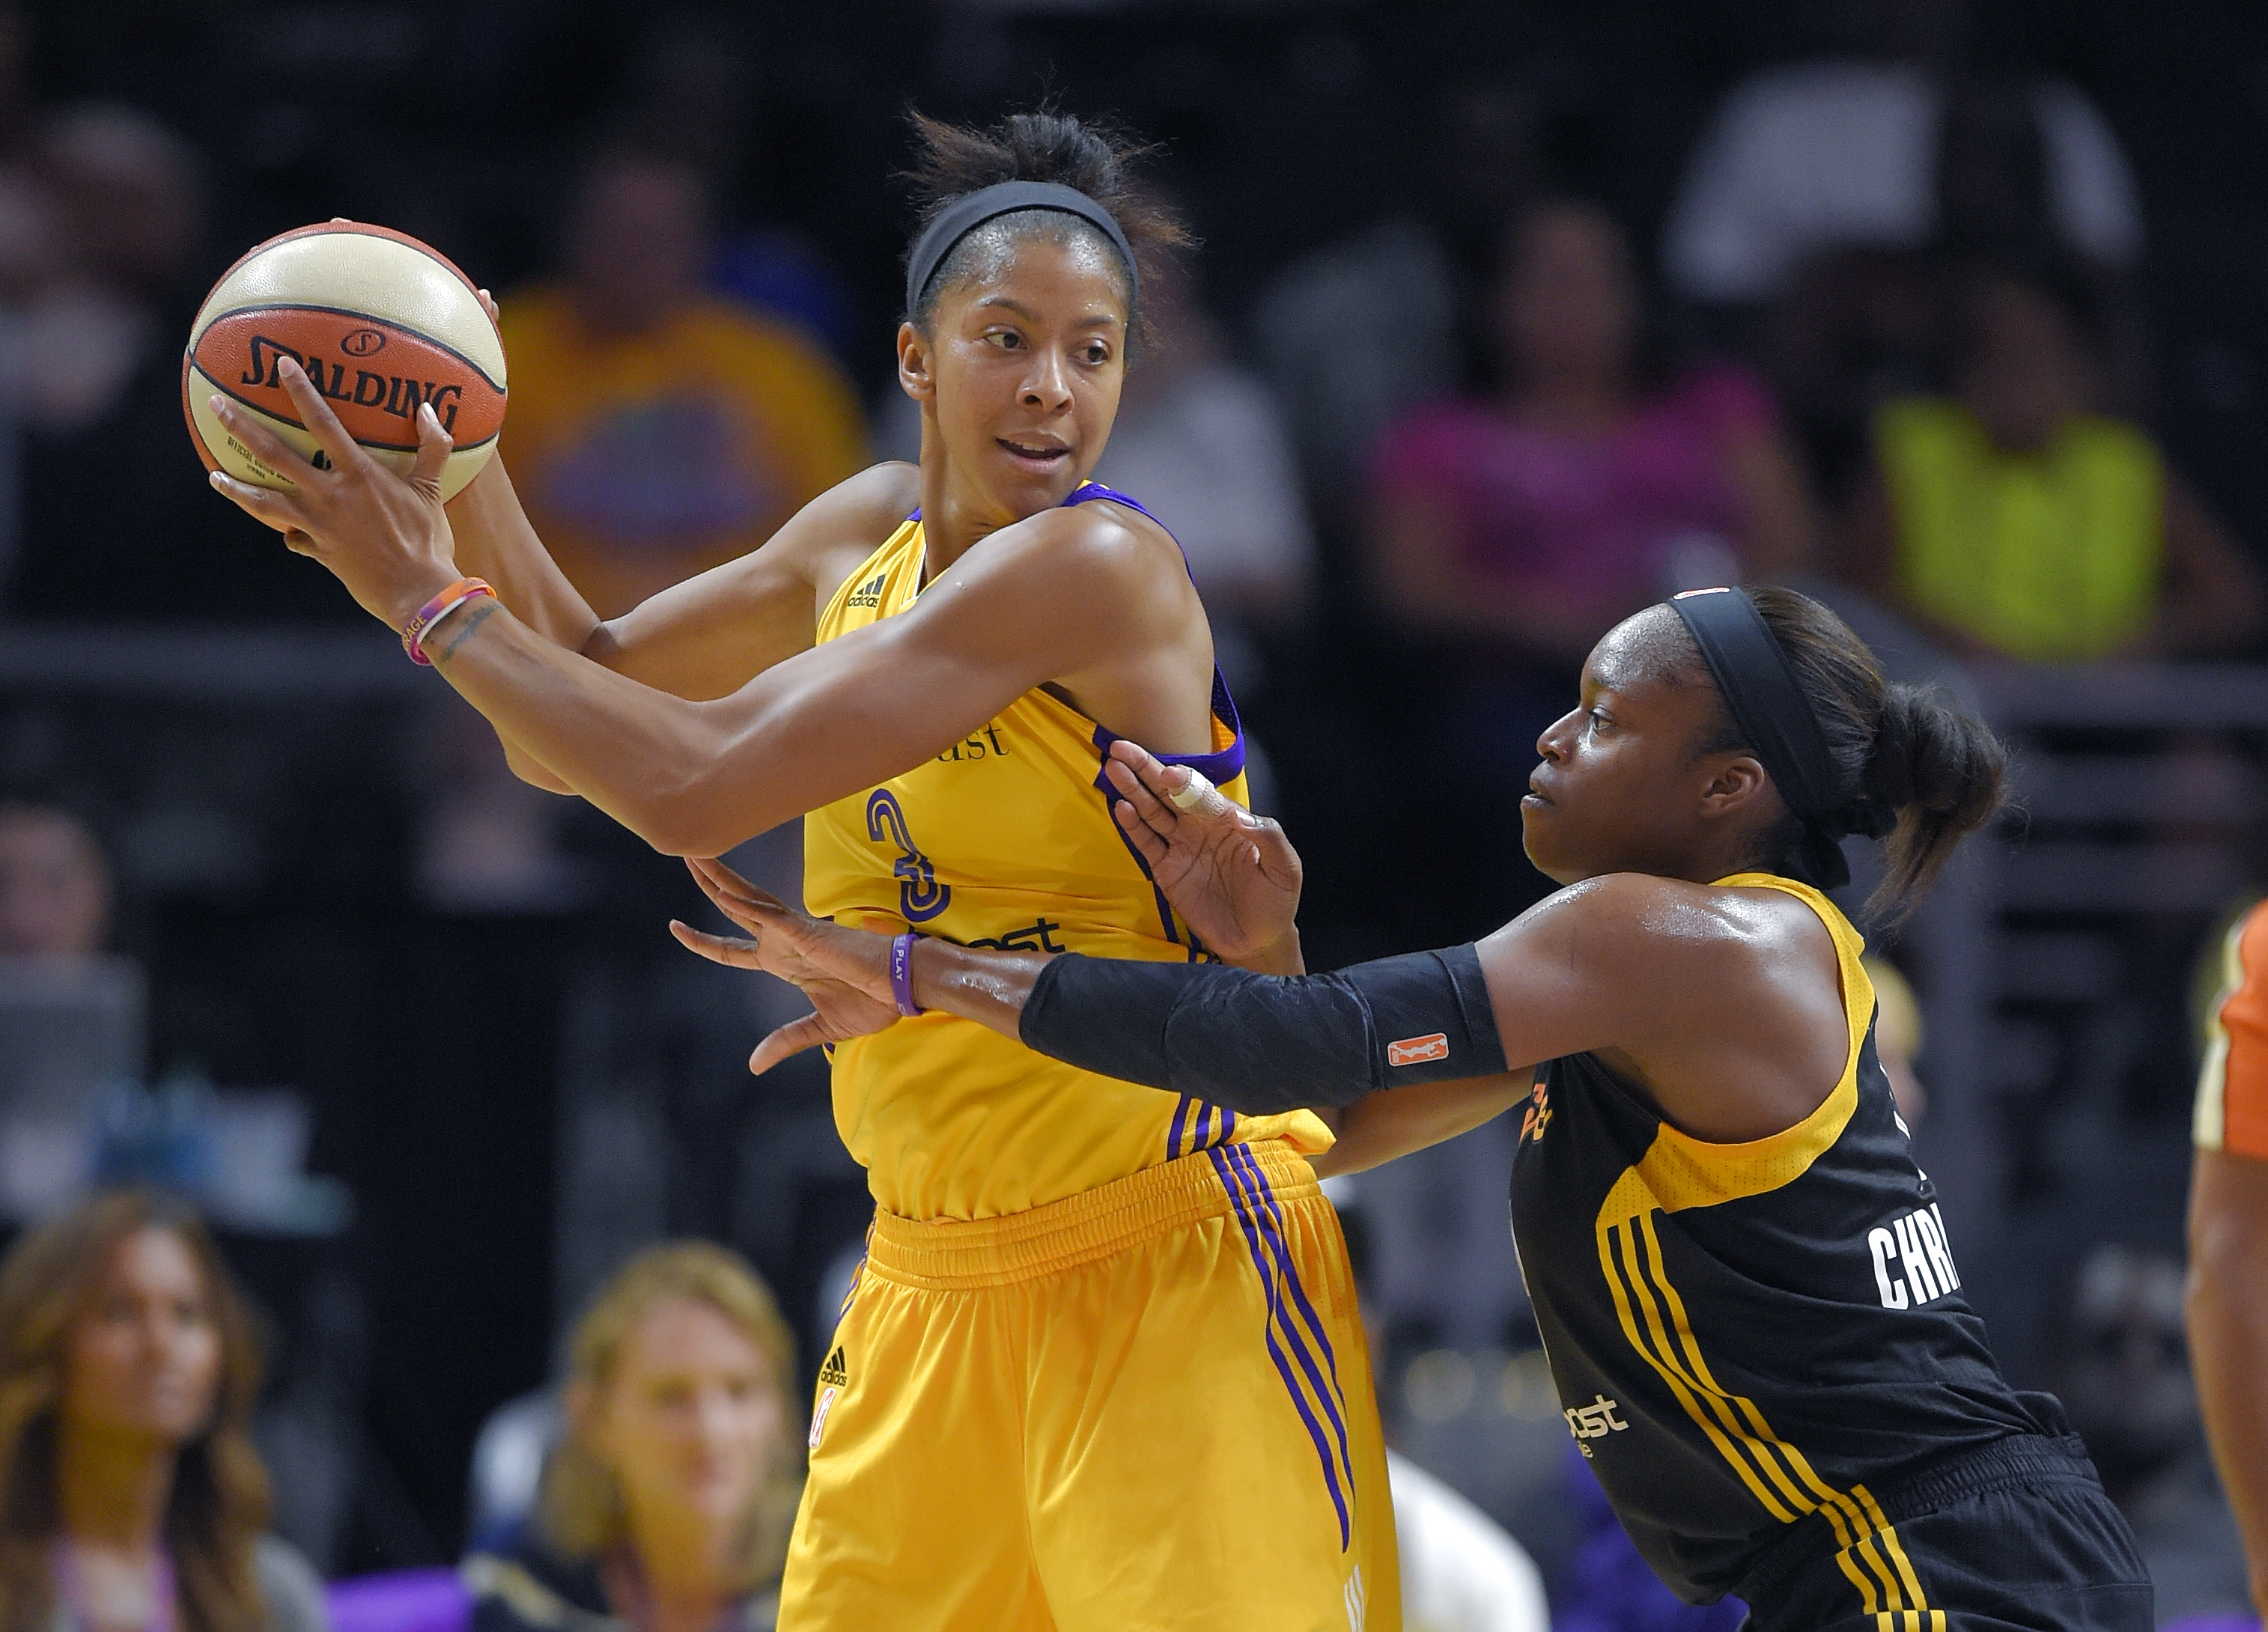 Los Angeles Sparks forward Candace Parker (left) tries to get past Tulsa Shock forward Karima Christmas (Photo: Mark J. Terrill, Associated Press)